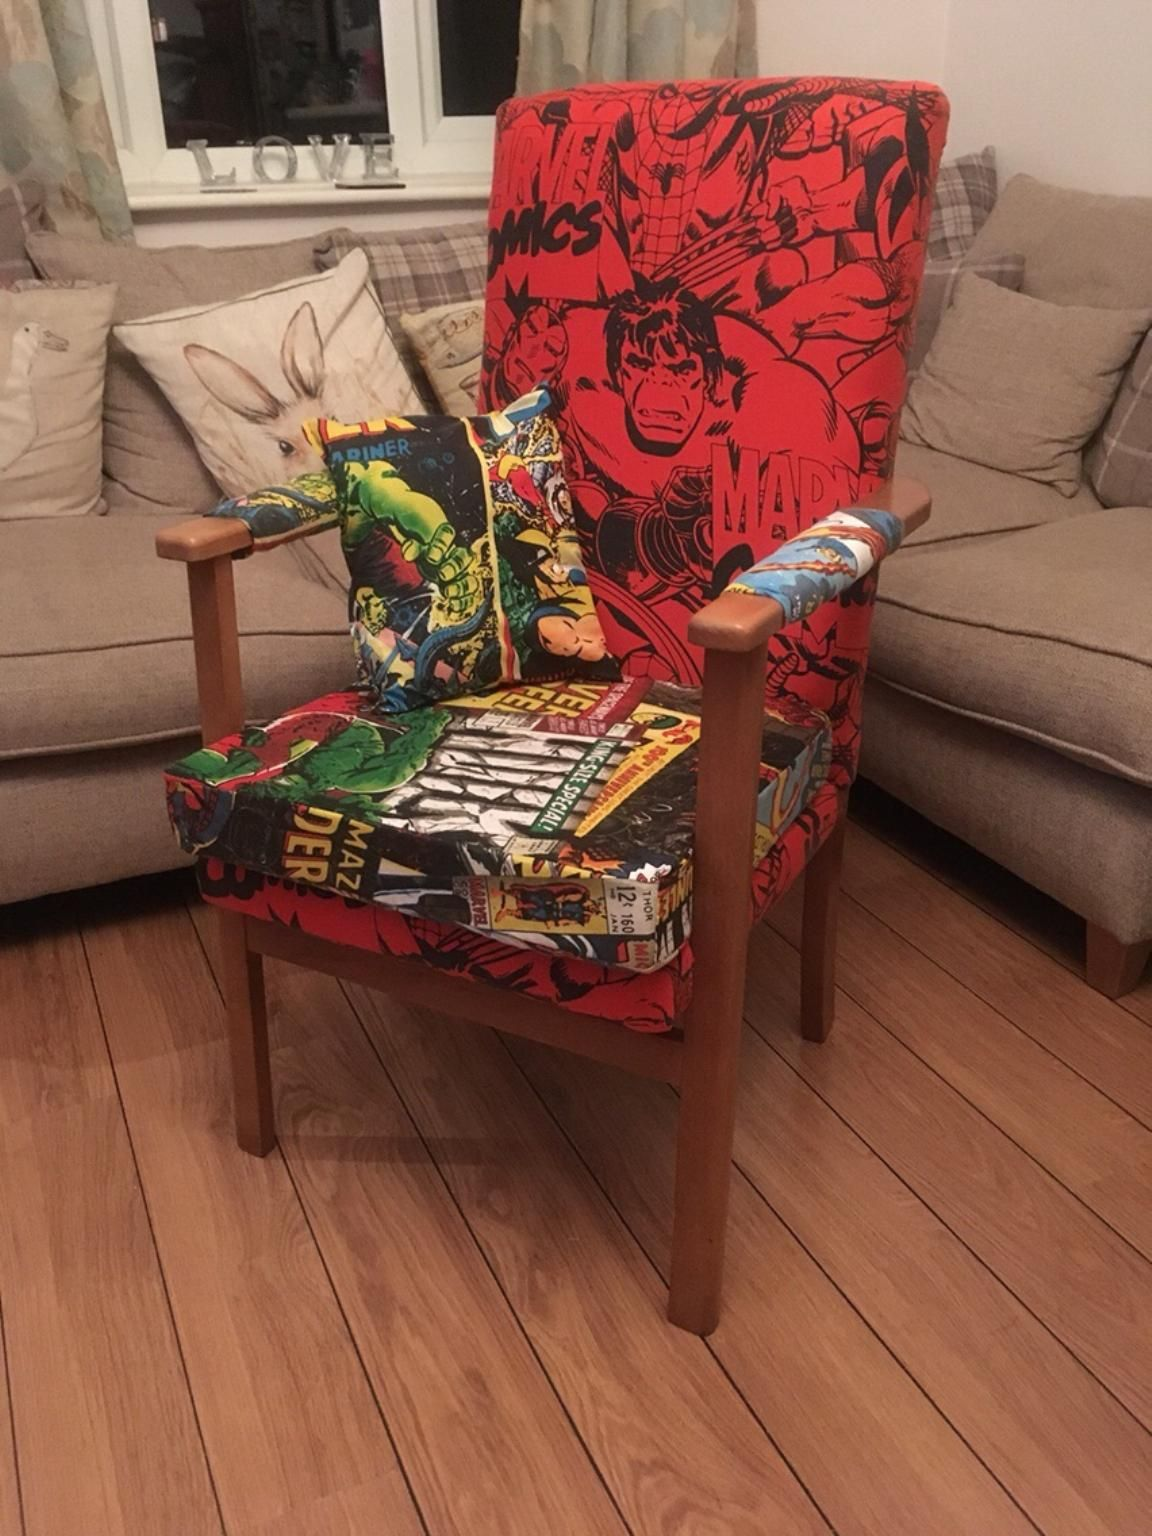 marvel comics retro backed arm chair designstuff upcycling pinterest sch ne dinge. Black Bedroom Furniture Sets. Home Design Ideas